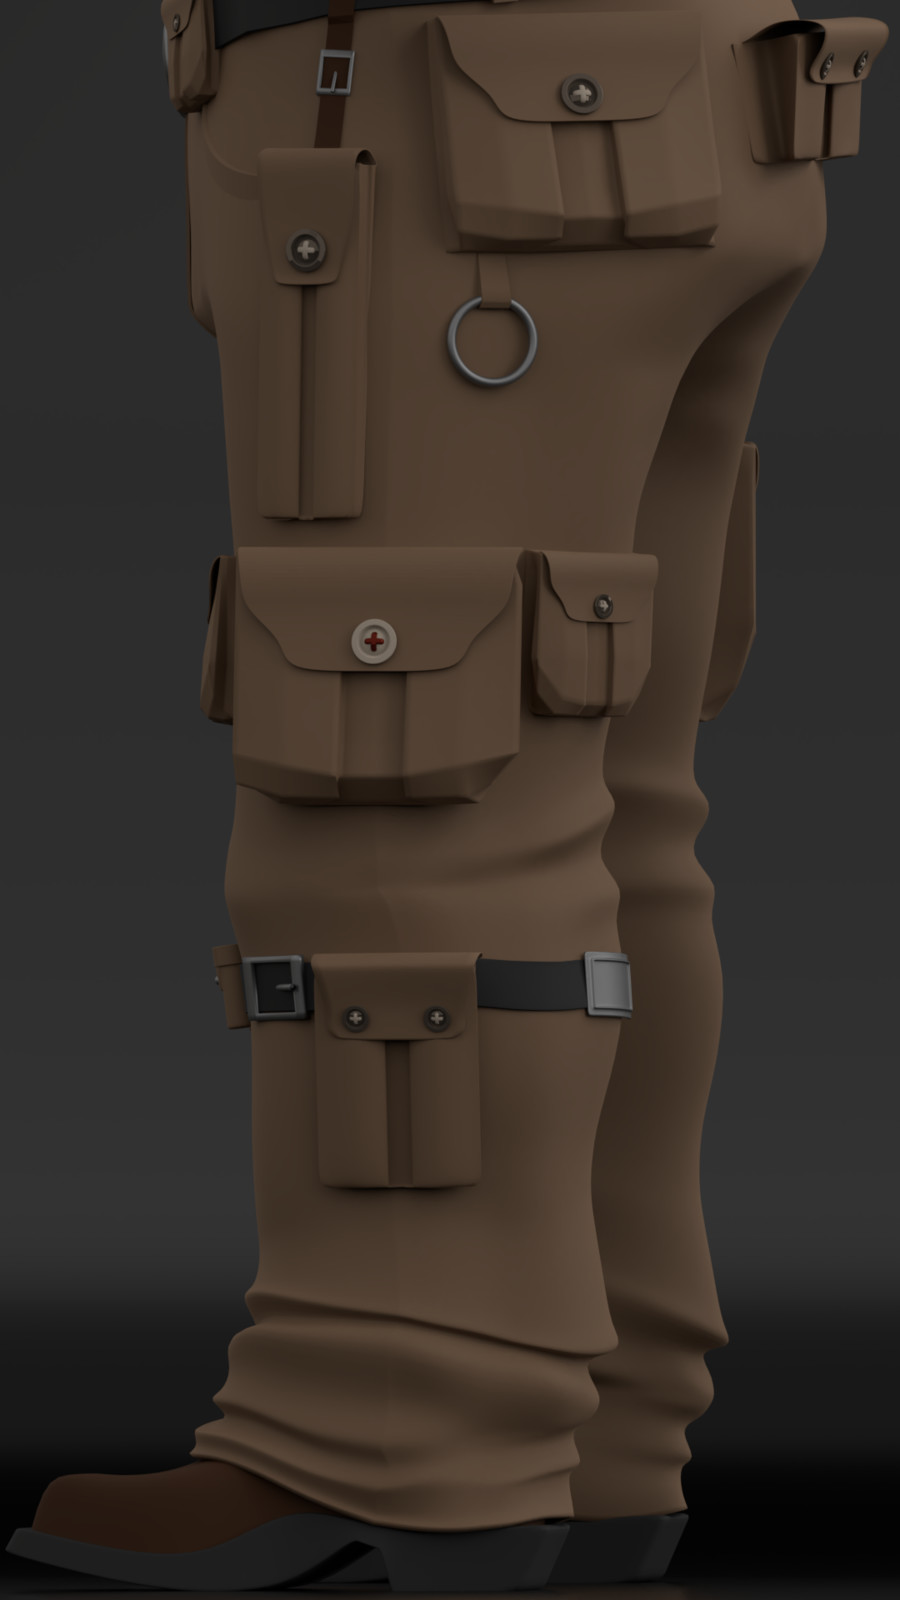 Detail of Edgar's pants. His character is known for having many pockets, which hold everything needed during an adventure.